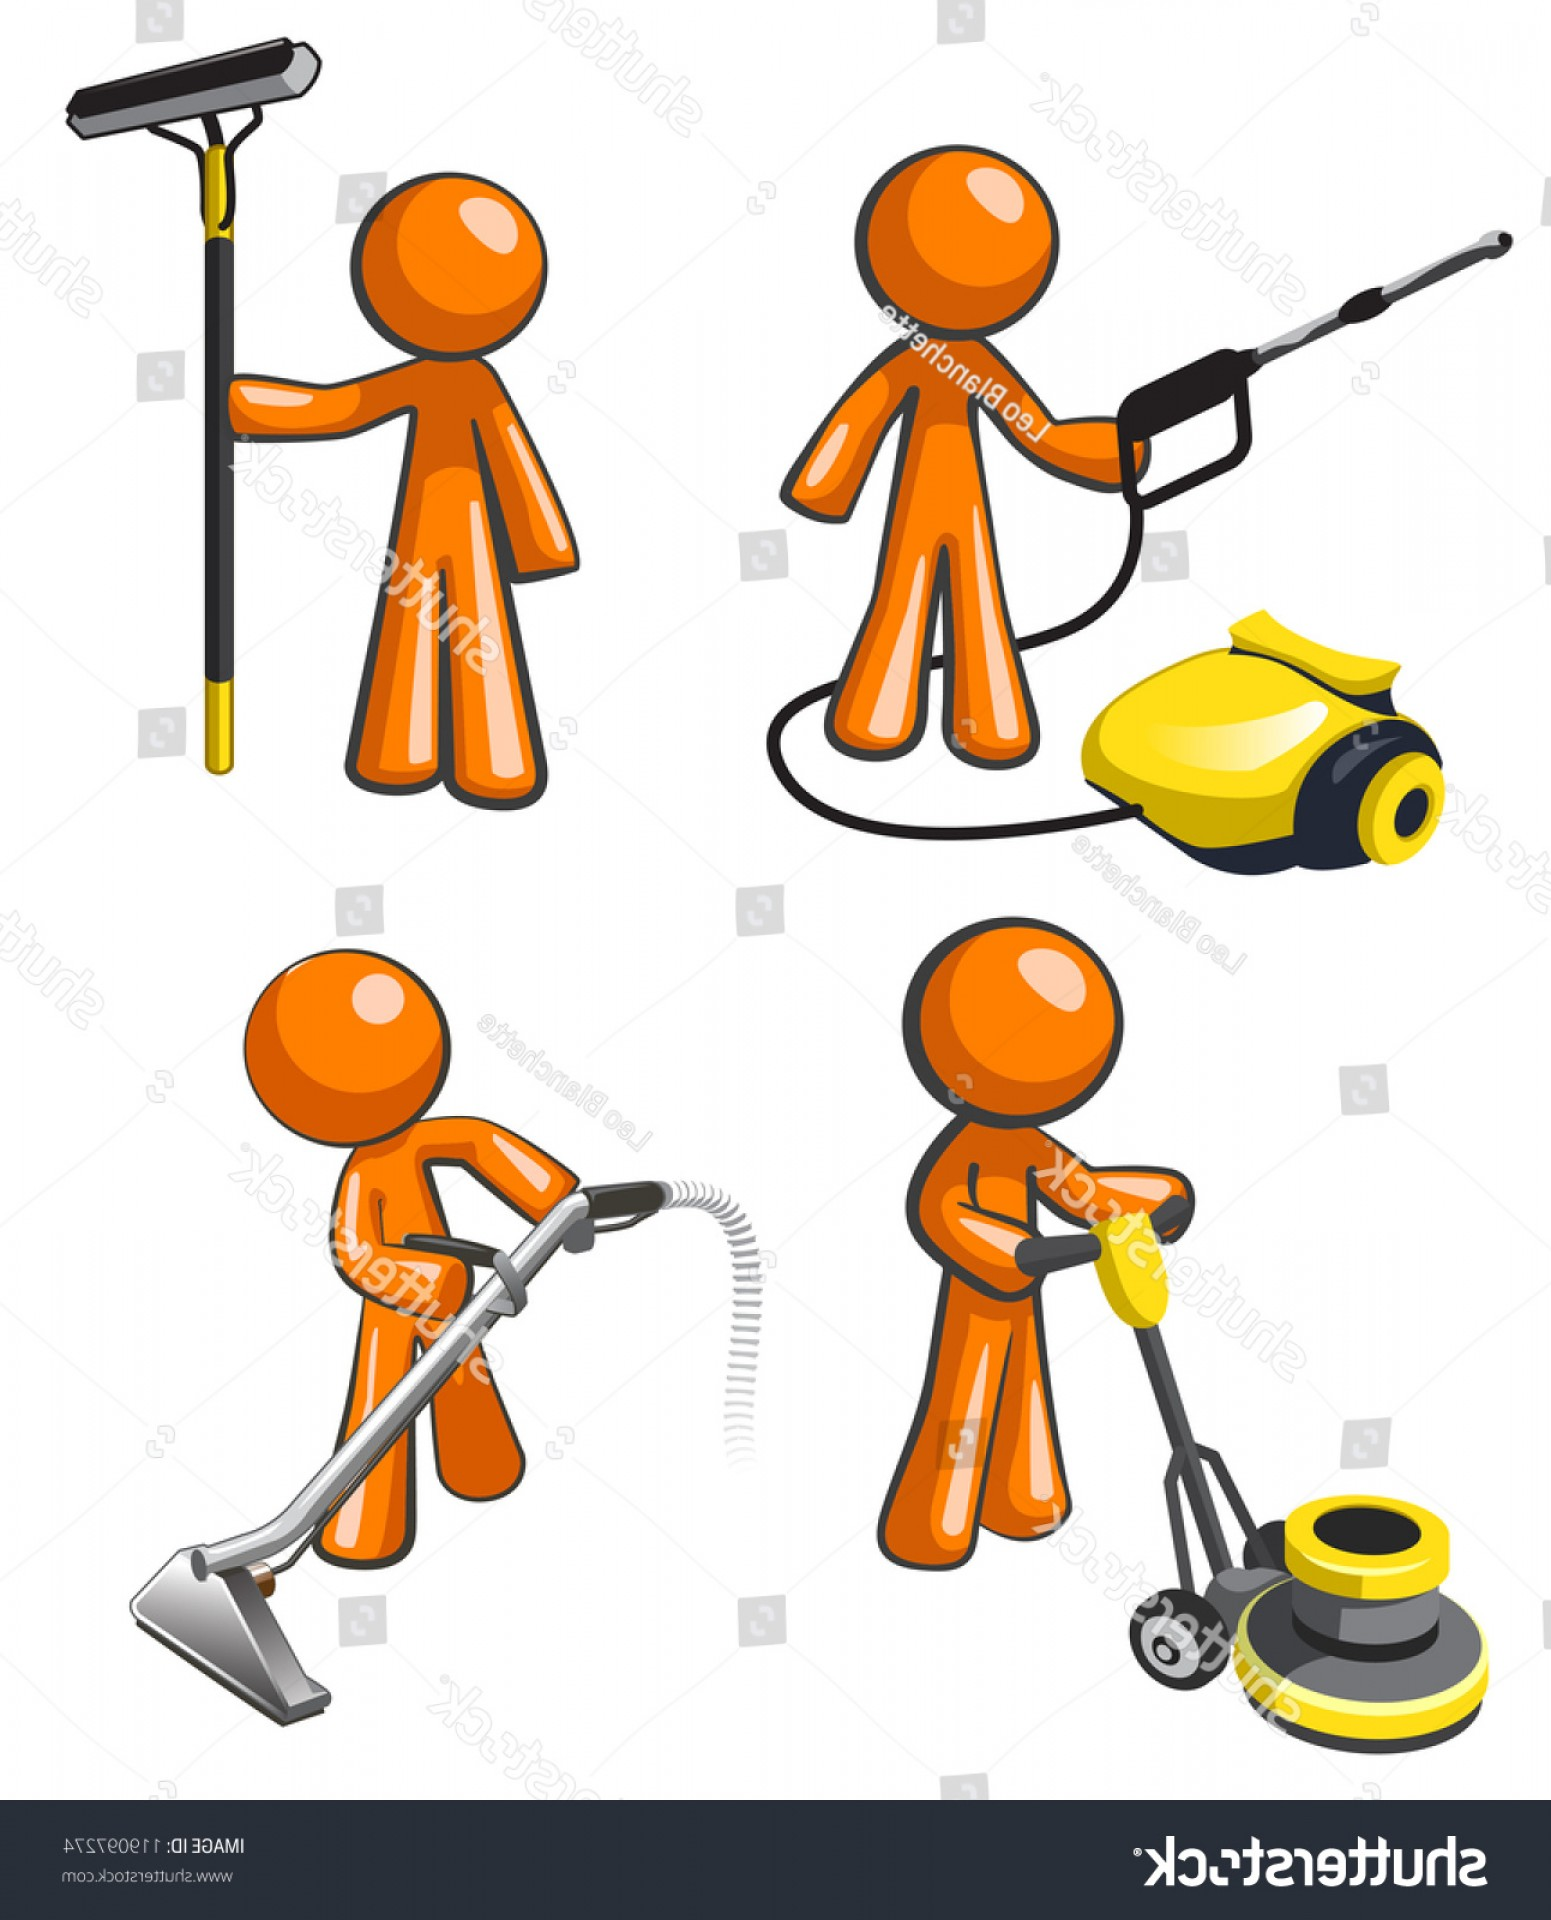 Cleaning Vector Janitorail: Cleaning Services Set Illustrations Janitorial Professionals